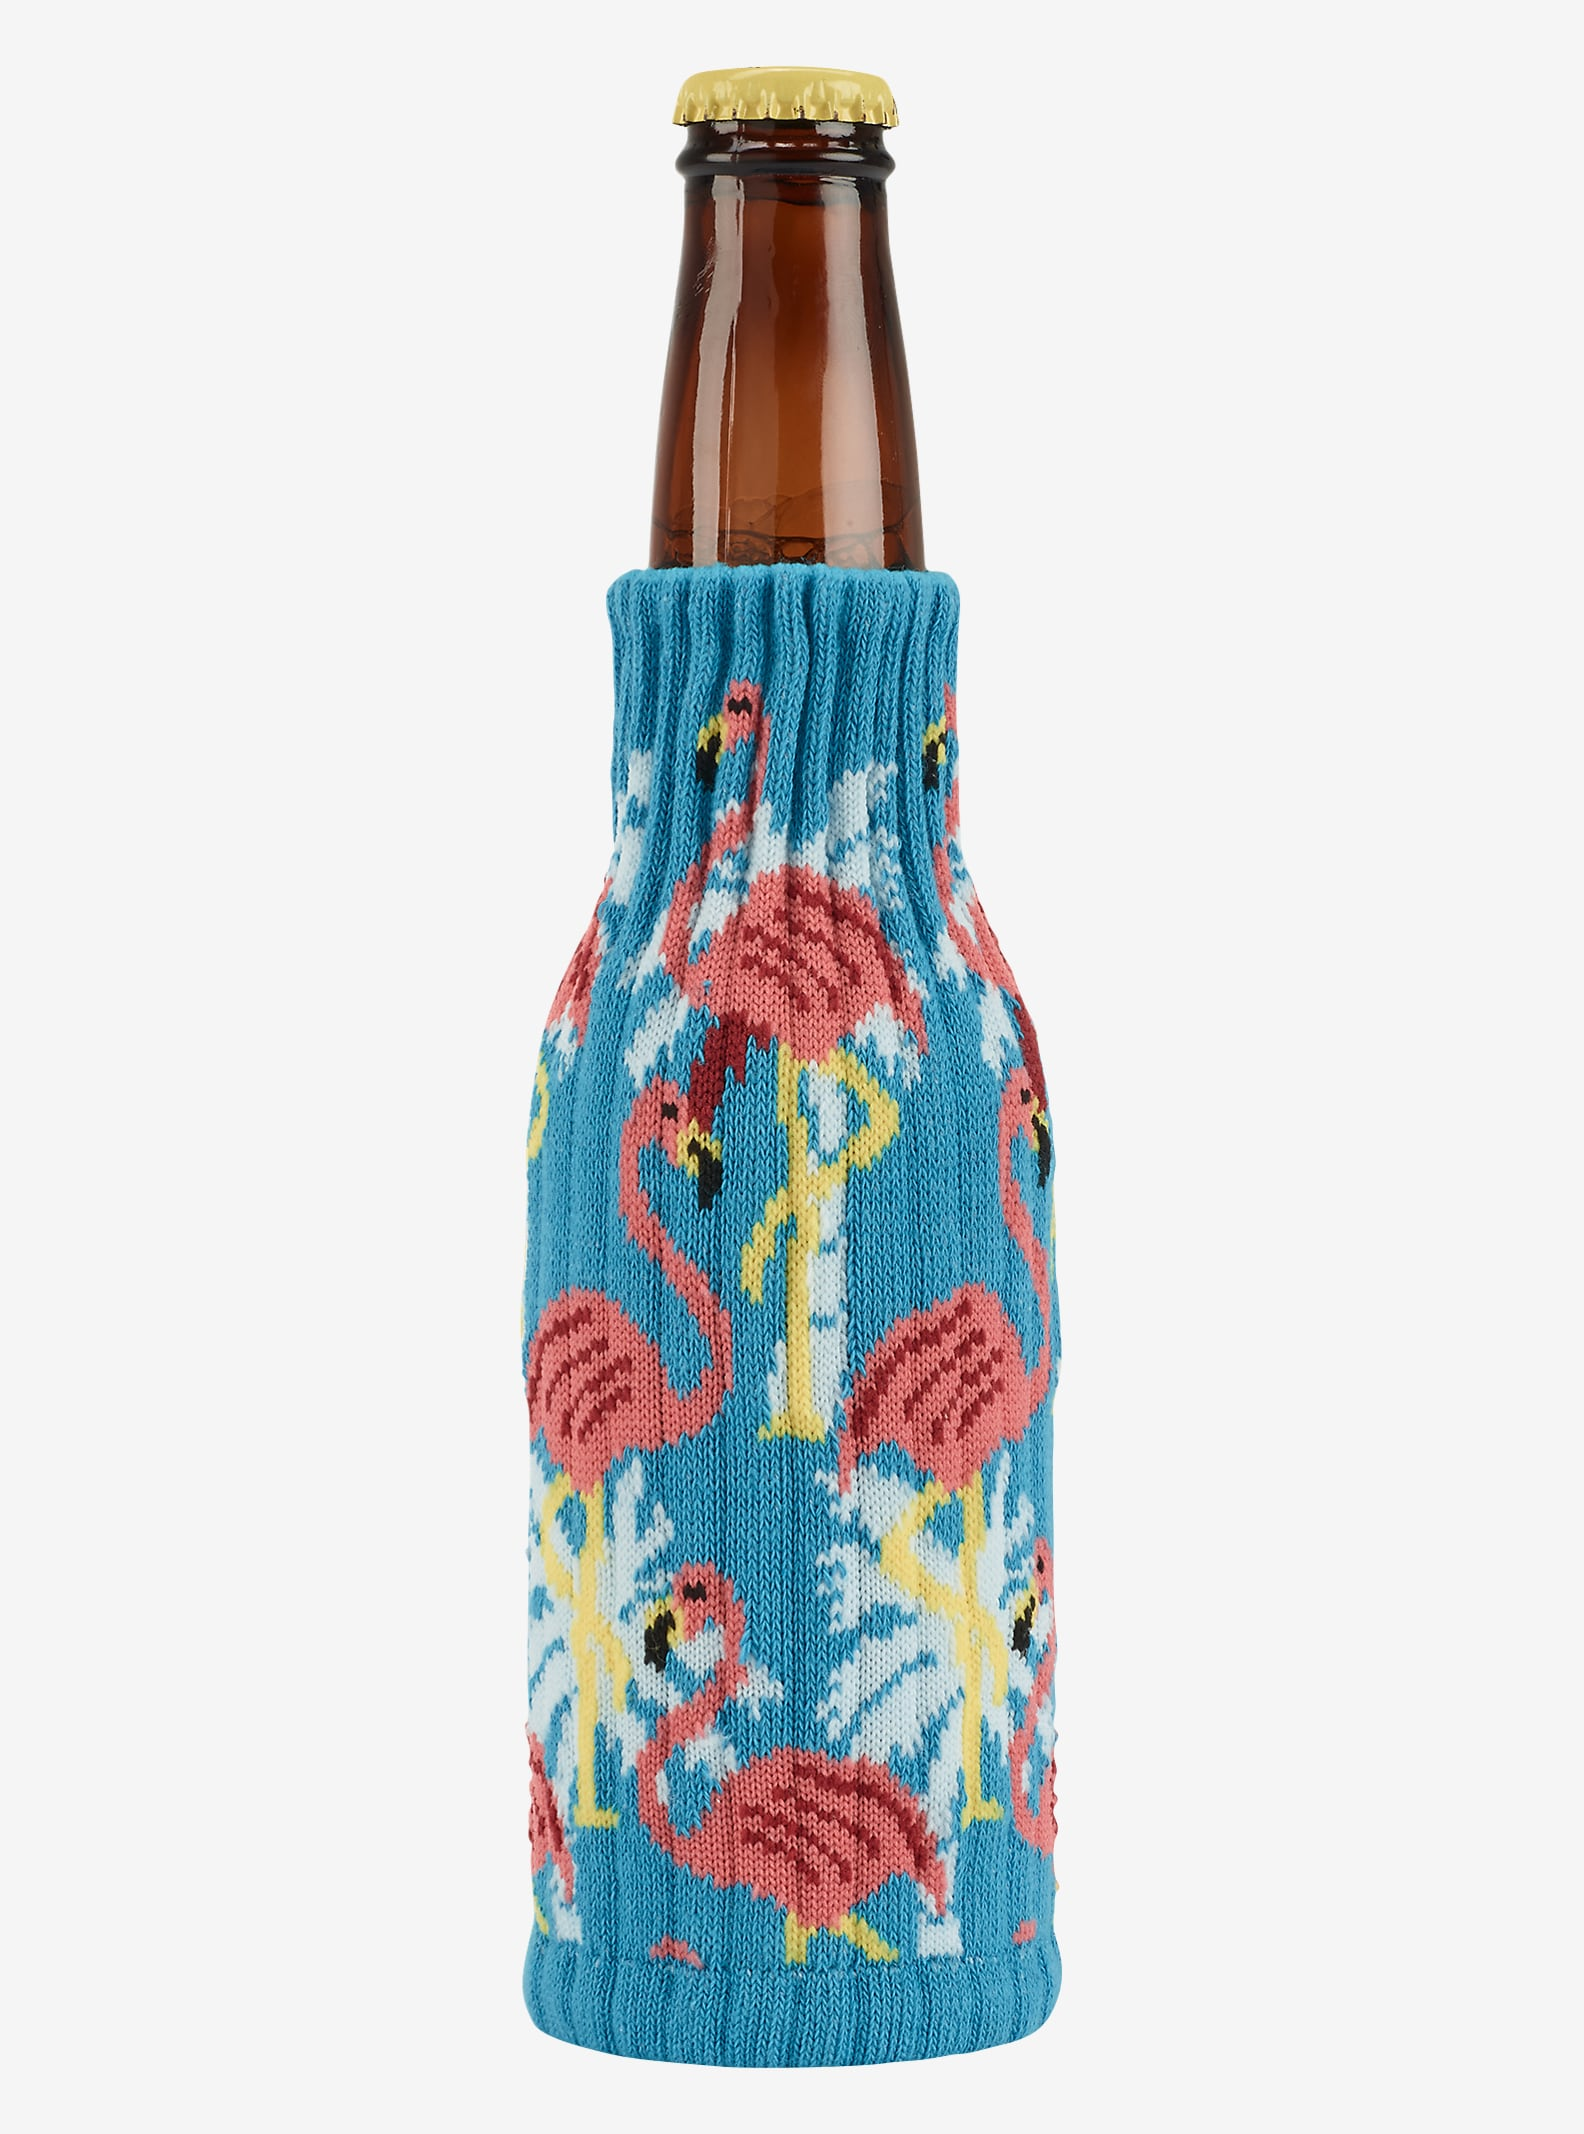 Burton Knit Koozie shown in Flamingo